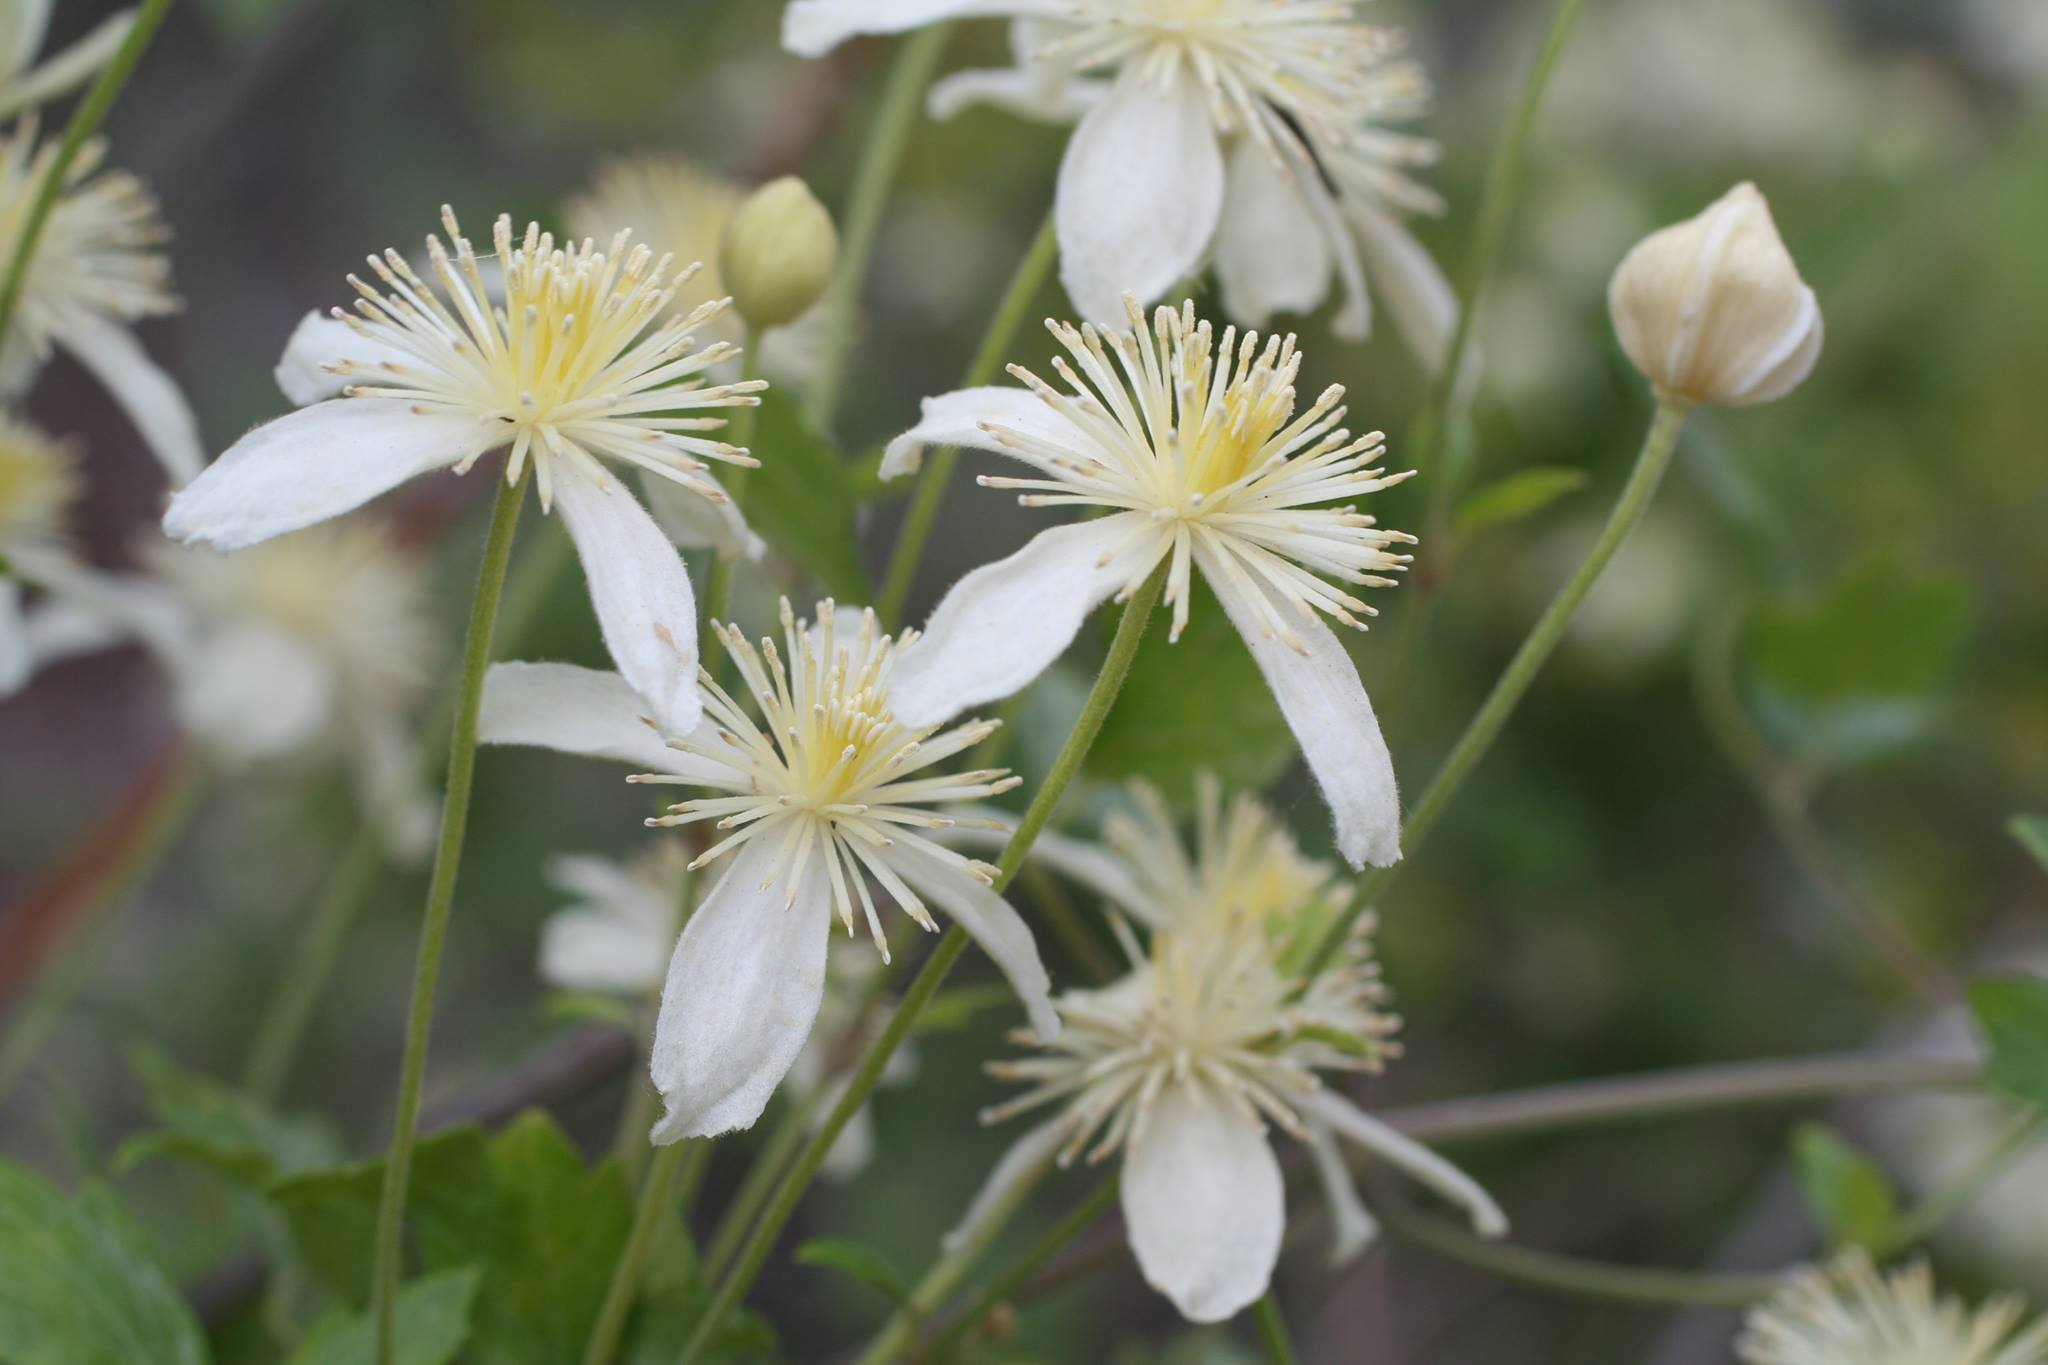 Spring-blooming Flora with Sally Isaacson at the Arroyo Hondo Preserve